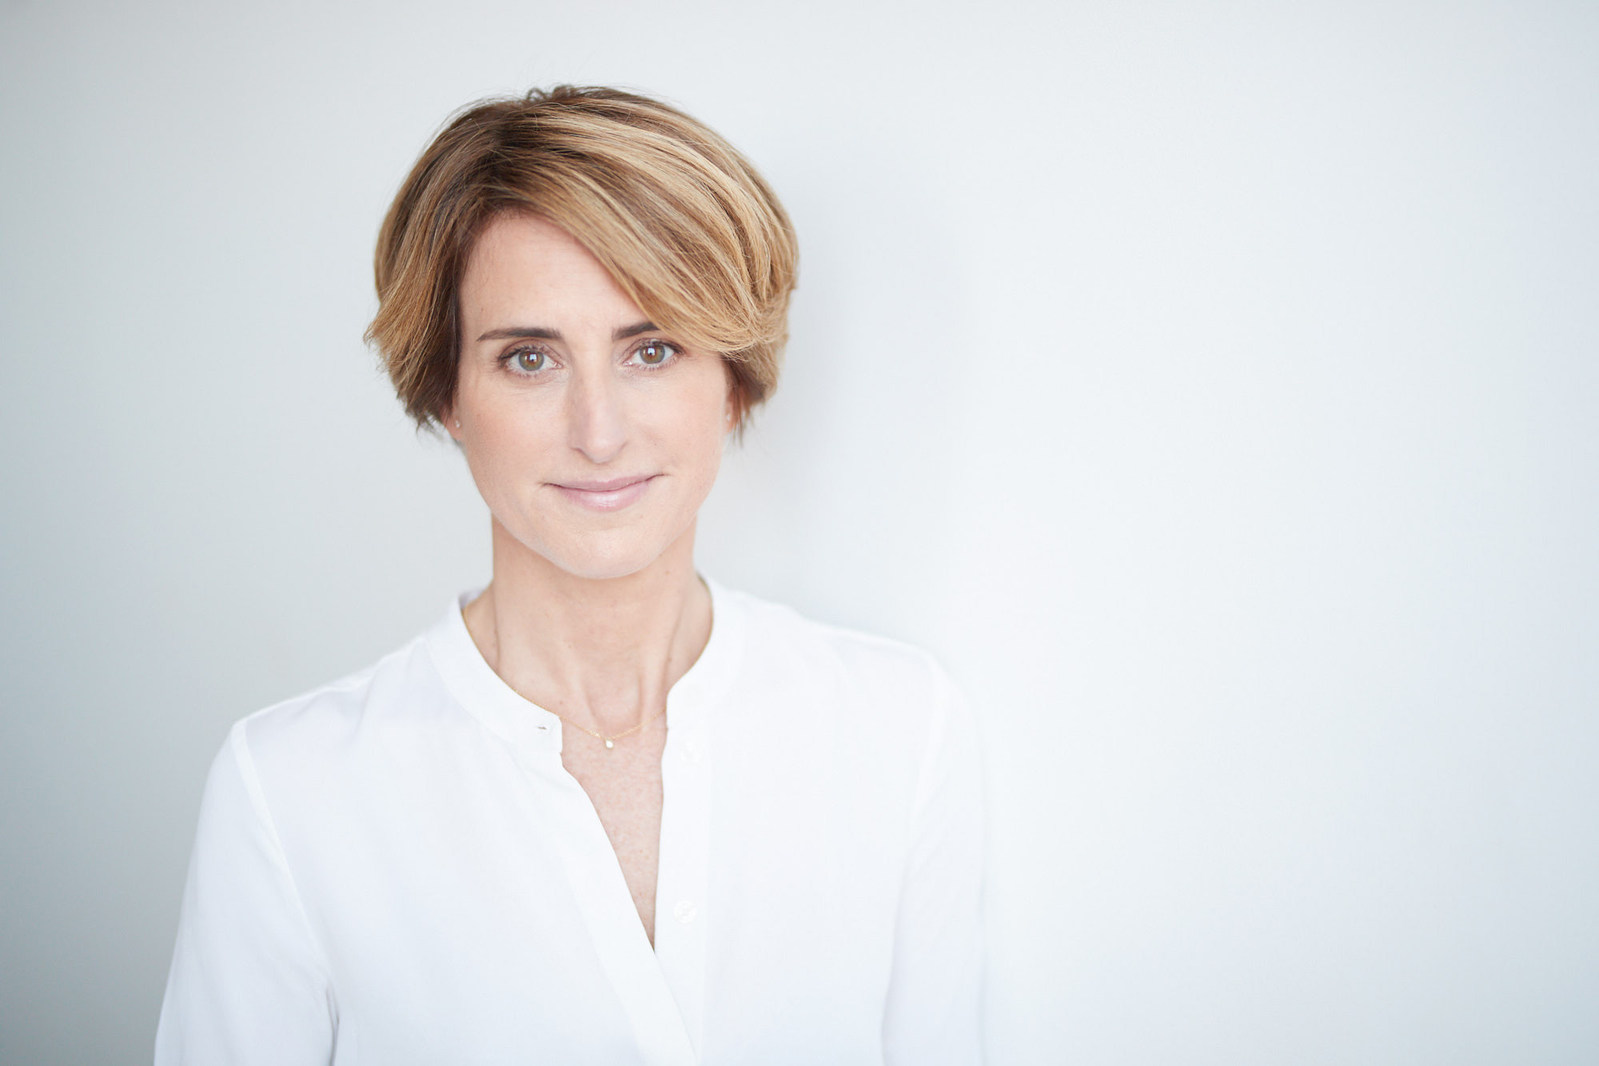 Annick Guérard is Transat's new COO